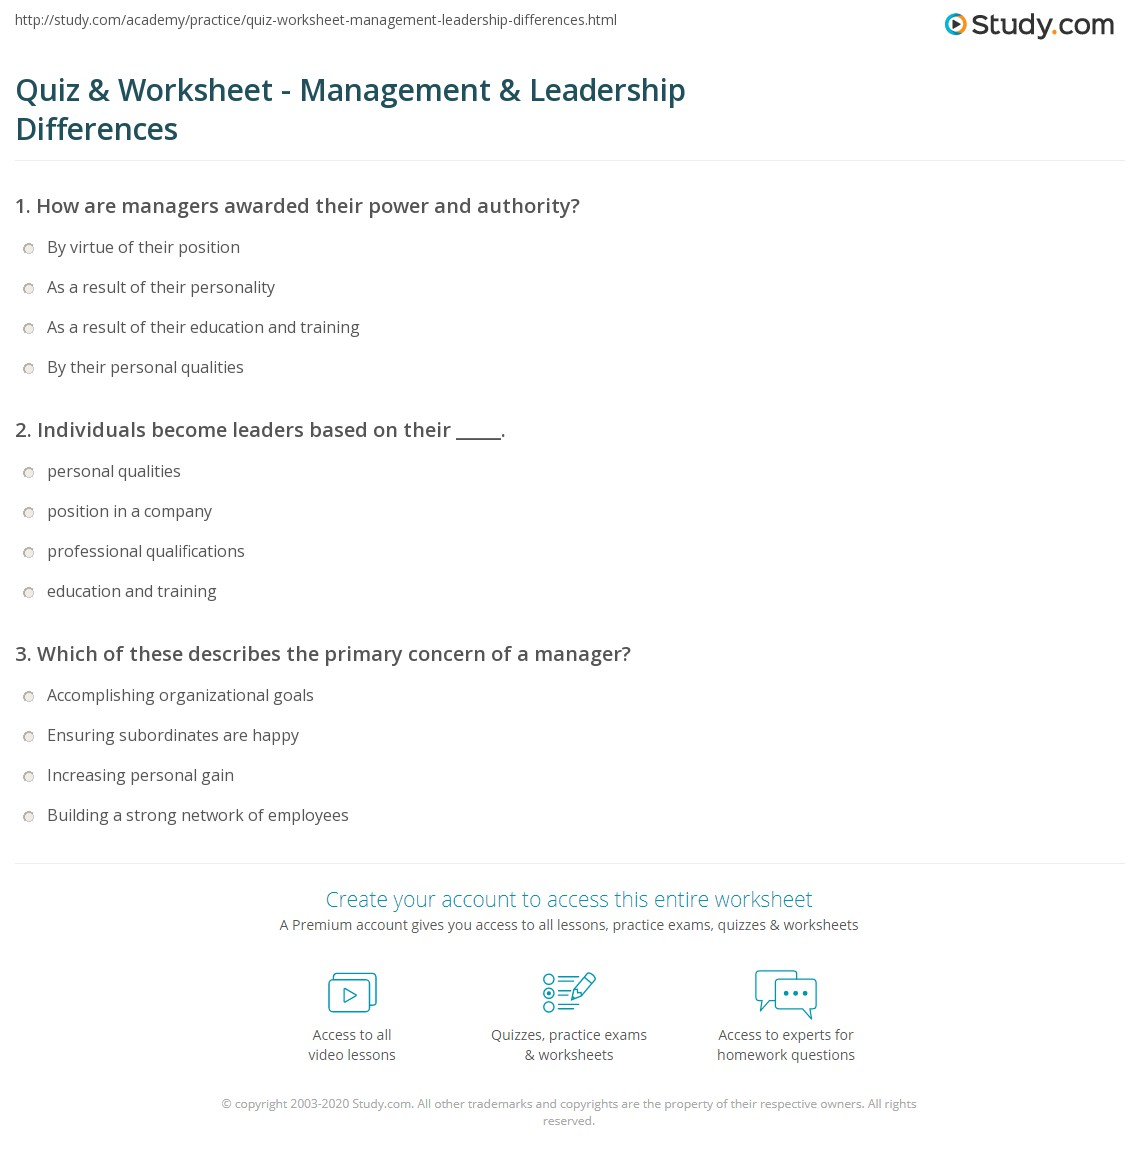 quiz worksheet management leadership differences. Black Bedroom Furniture Sets. Home Design Ideas